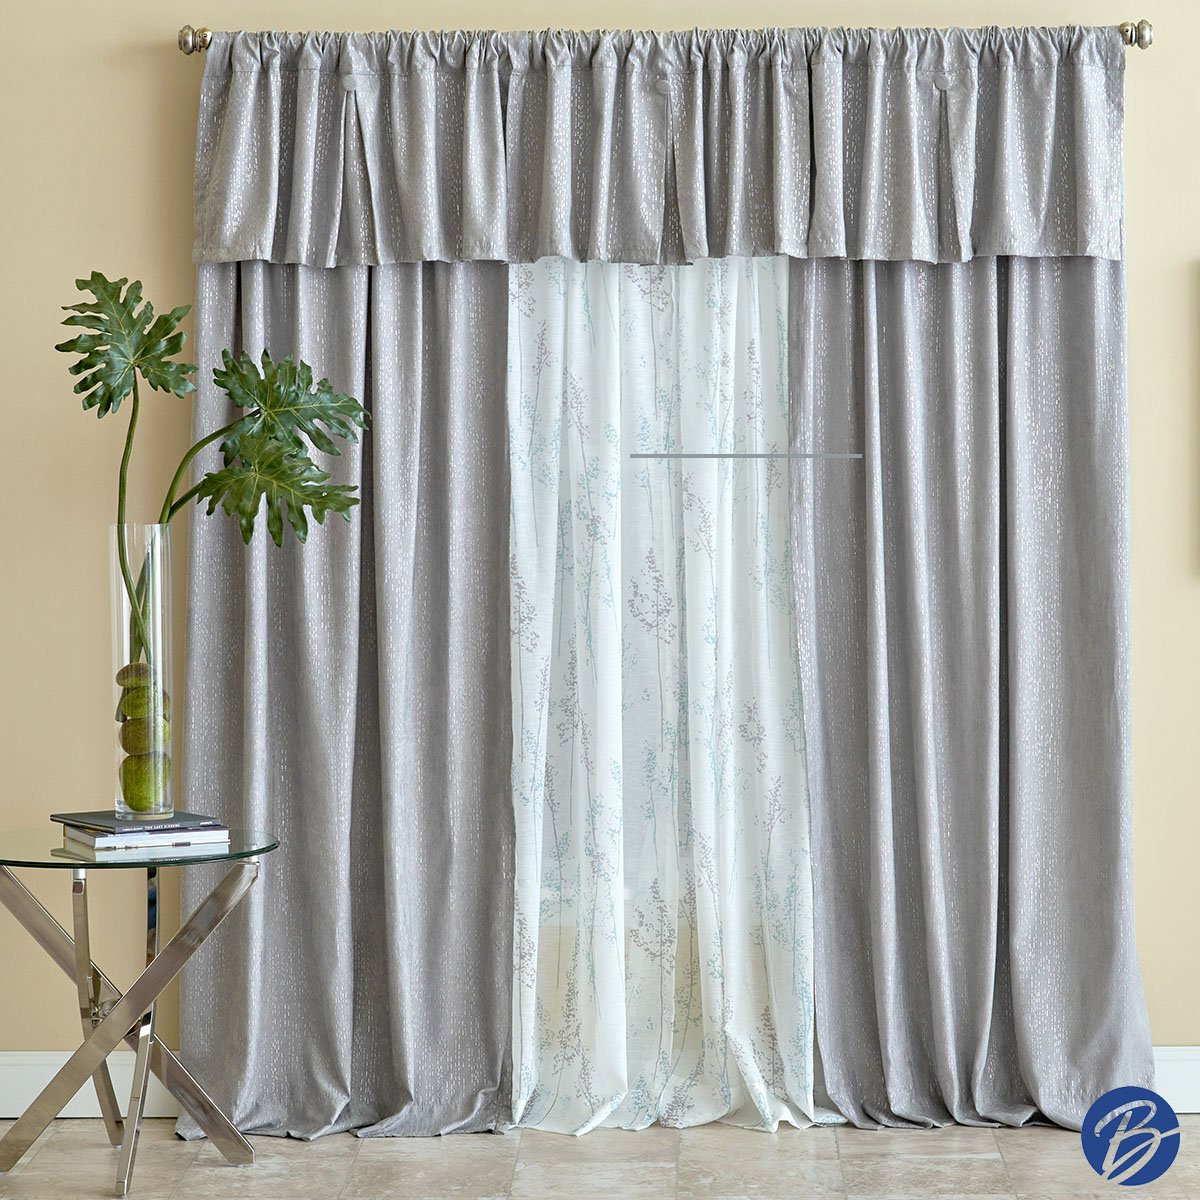 Boscov's Shower Curtains Boscov S On Twitter